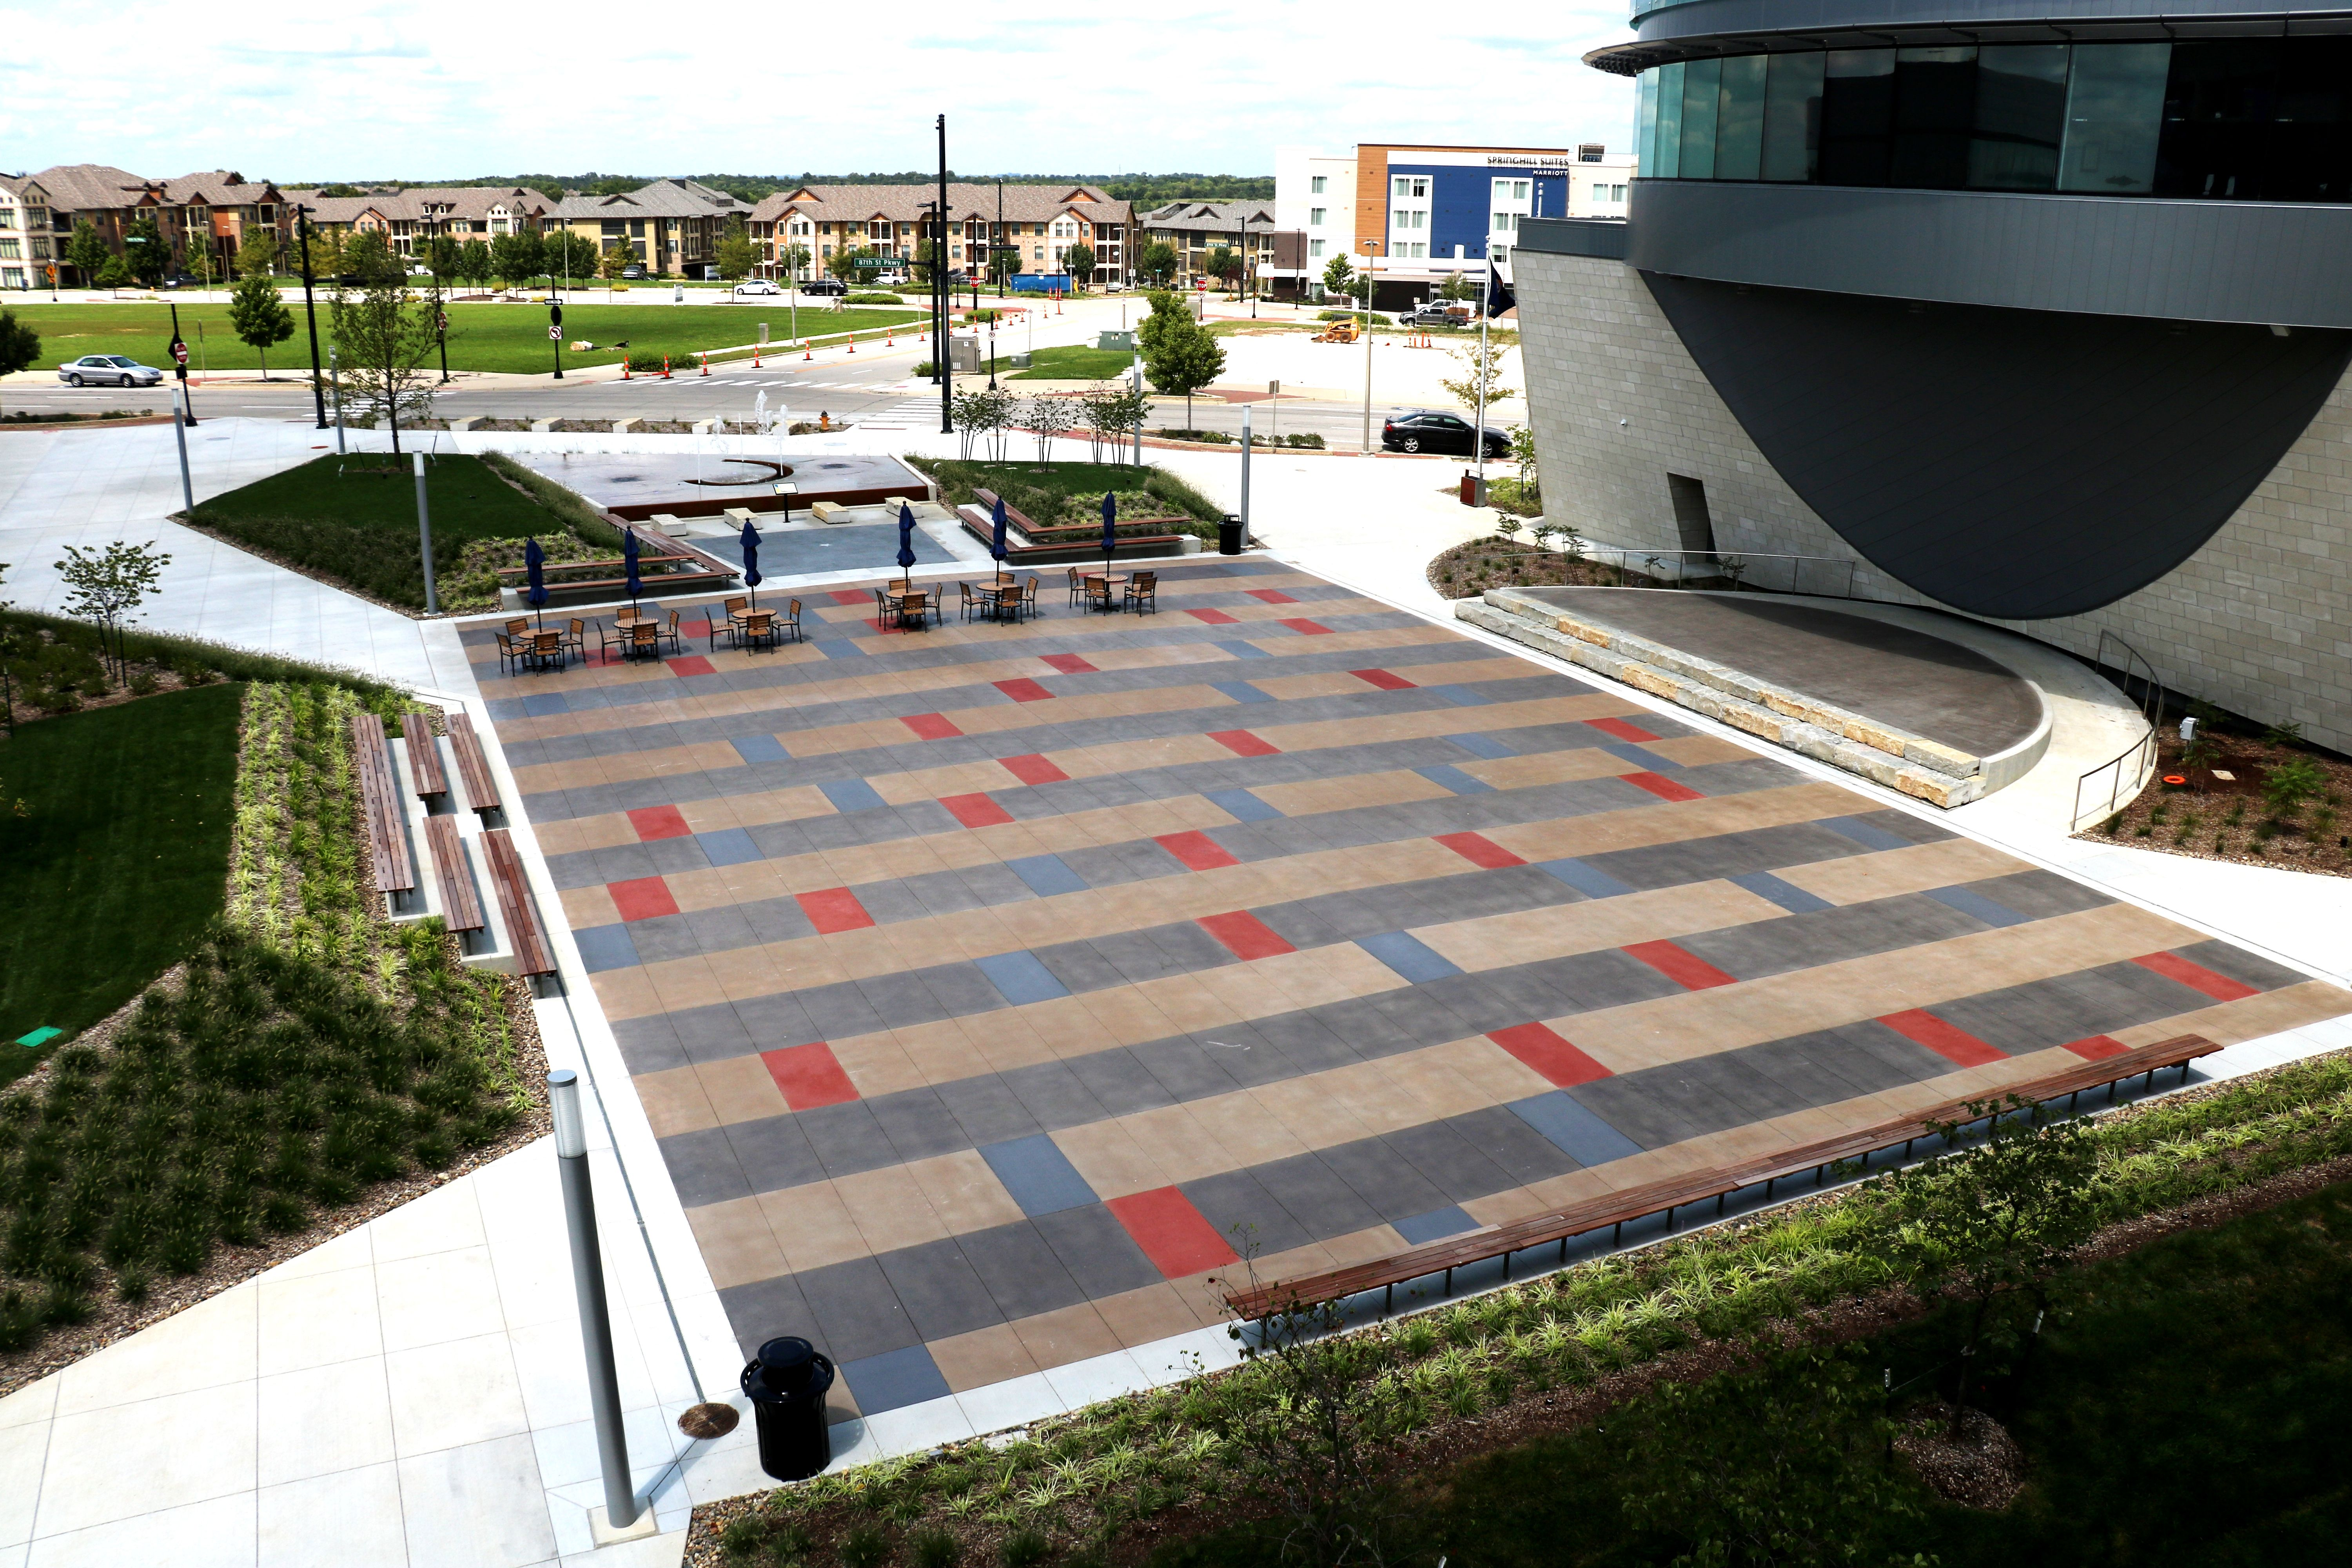 Bomanite Sandscape Texture with Bomanite Con-Color is featured at the Lenexa Civic Center Festival Plaza and Bomanite Alloy at the History Node.